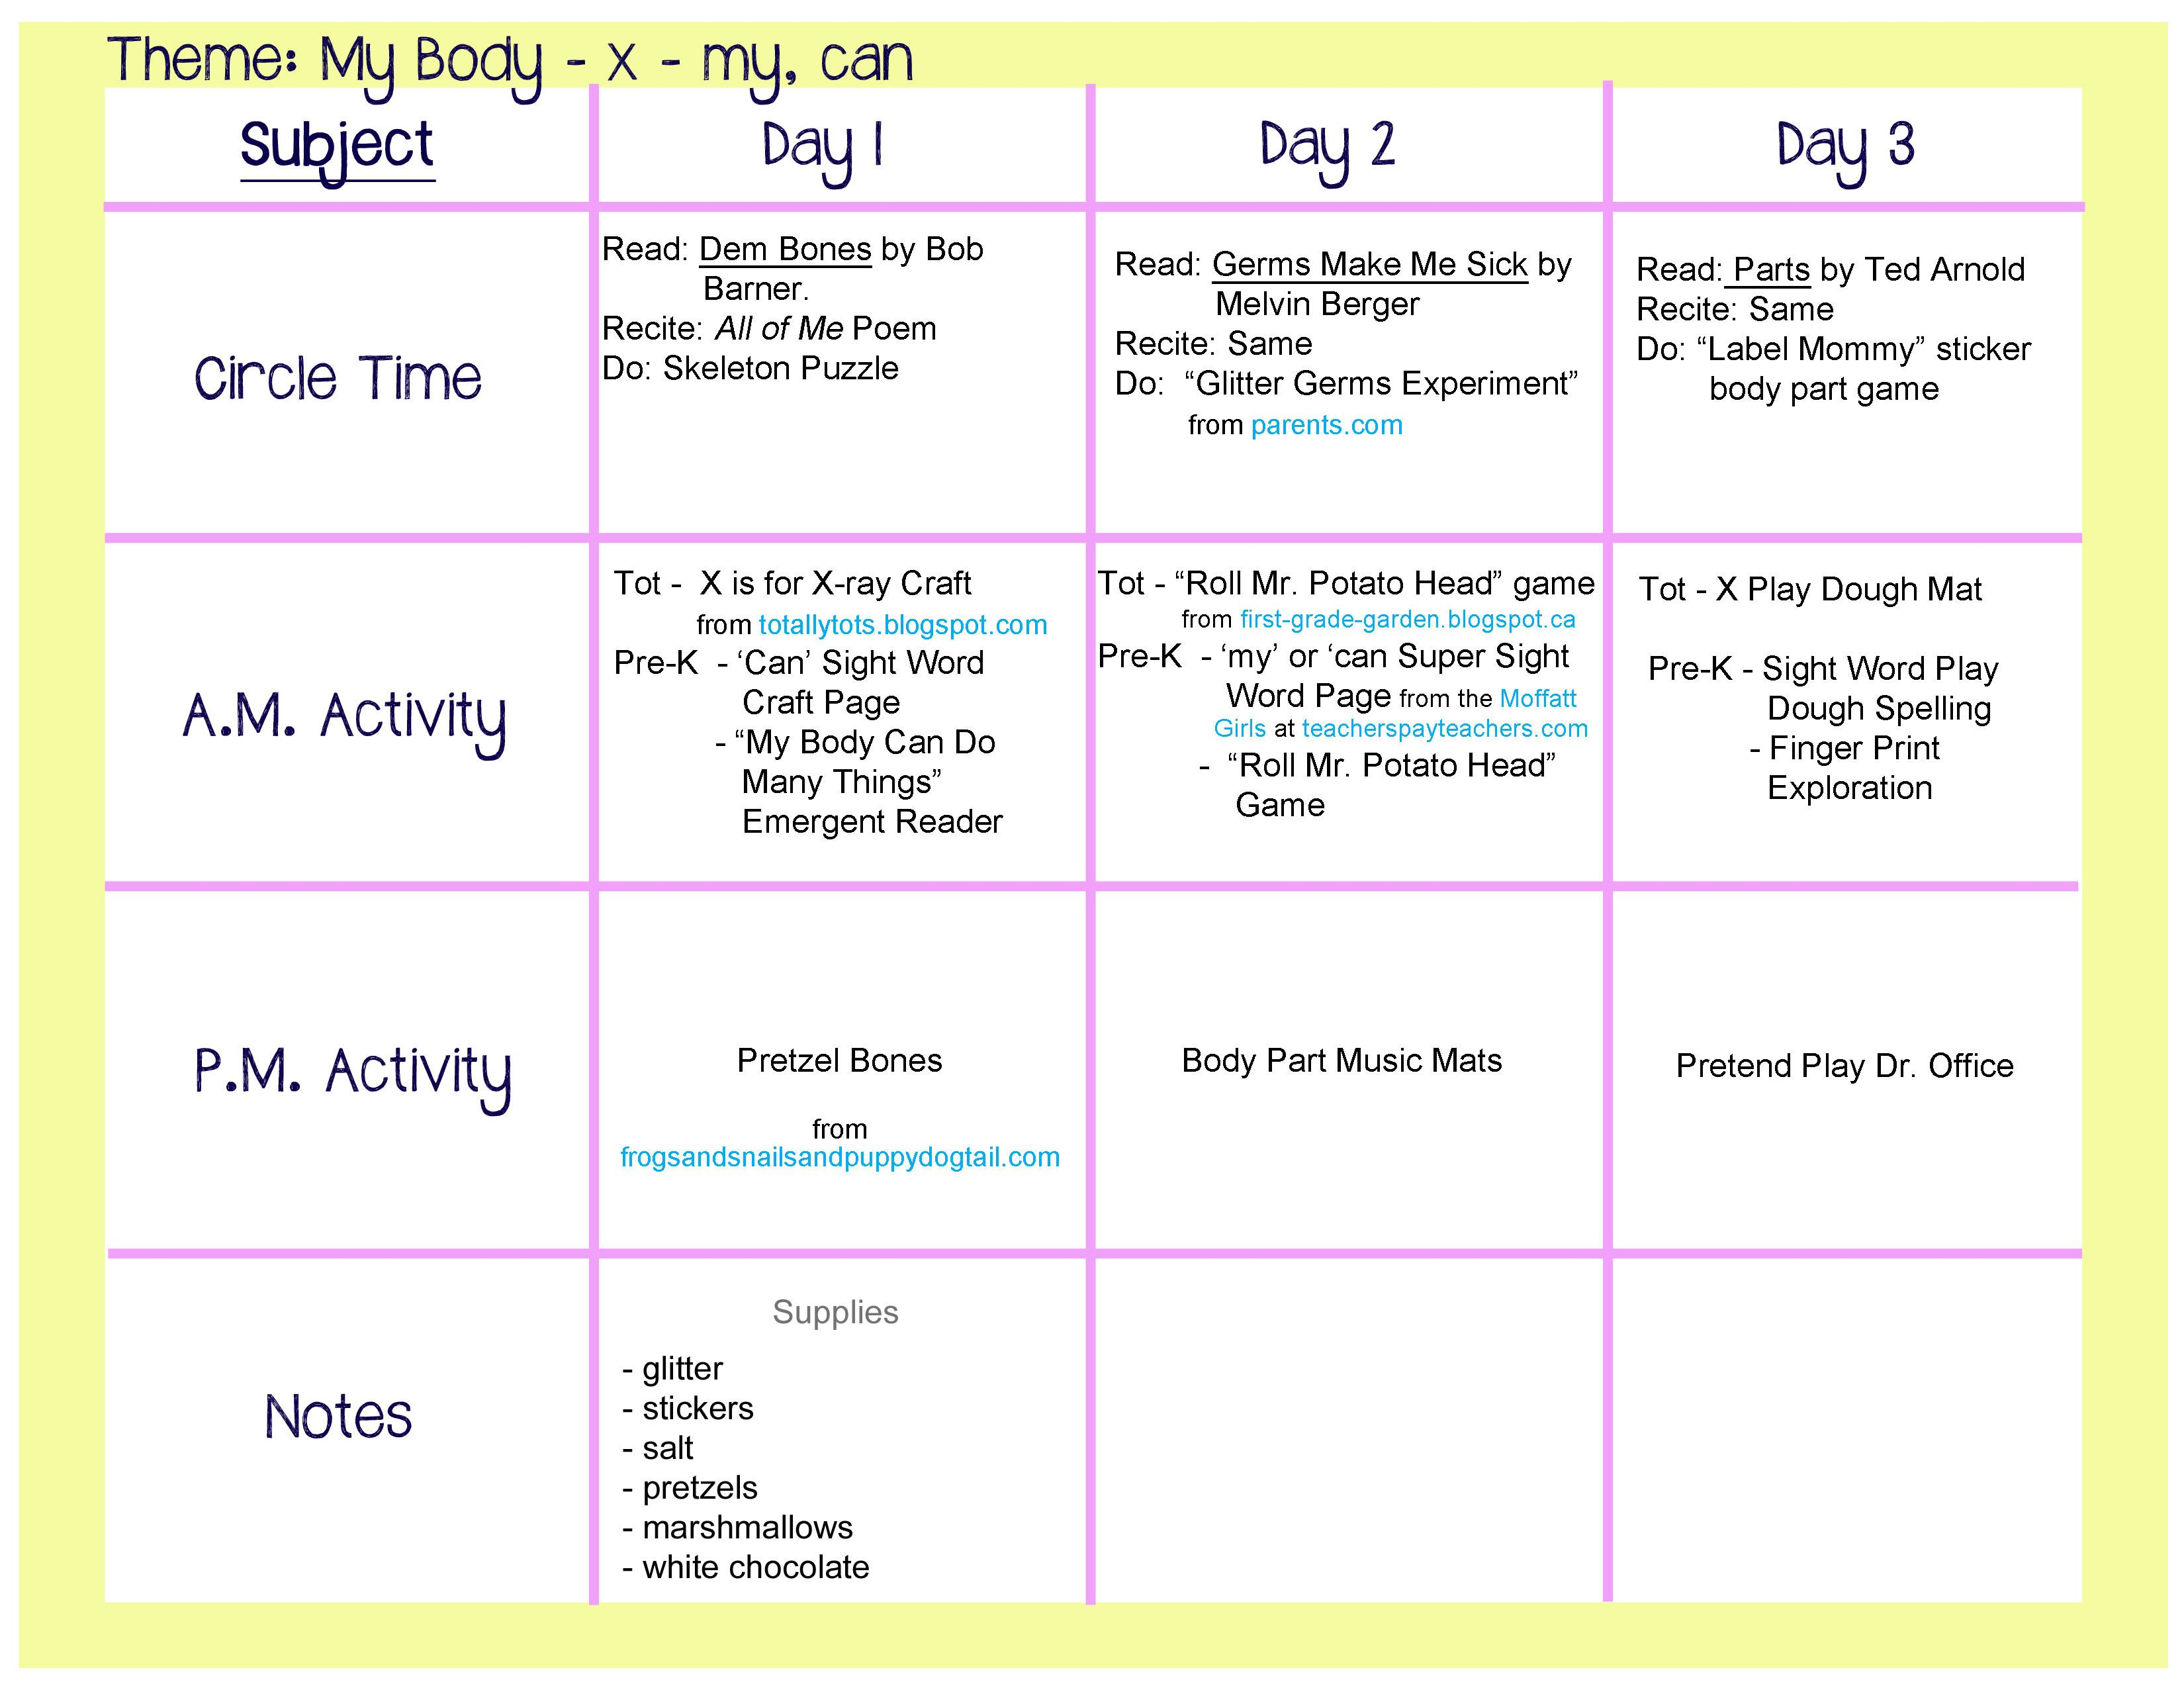 E-business planning activities for kids